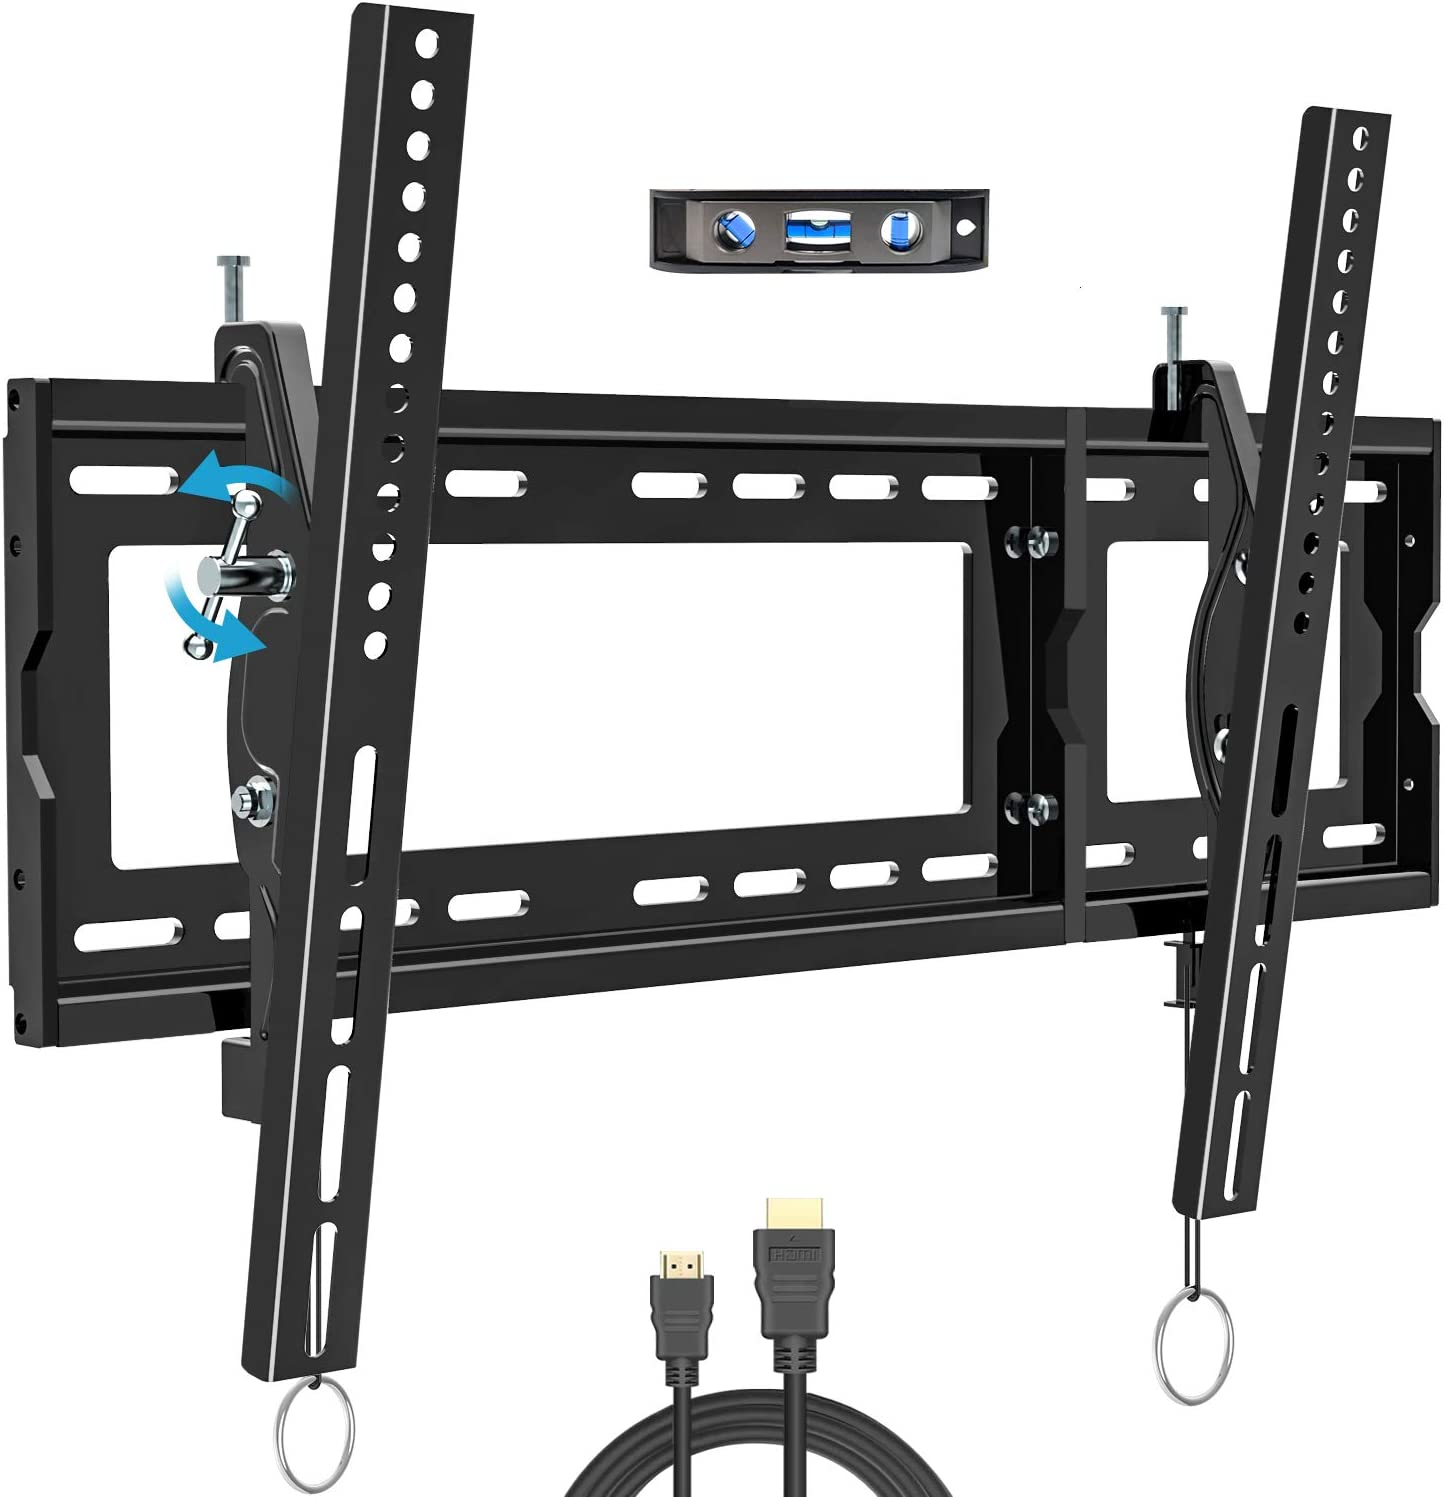 BLUE STONE Tilt TV Wall Mount Bracket for Most 32-83 Inches TVs, TV Wall Mount with VESA up to 600x400mm, Weight up to 165lbs, Fit 16